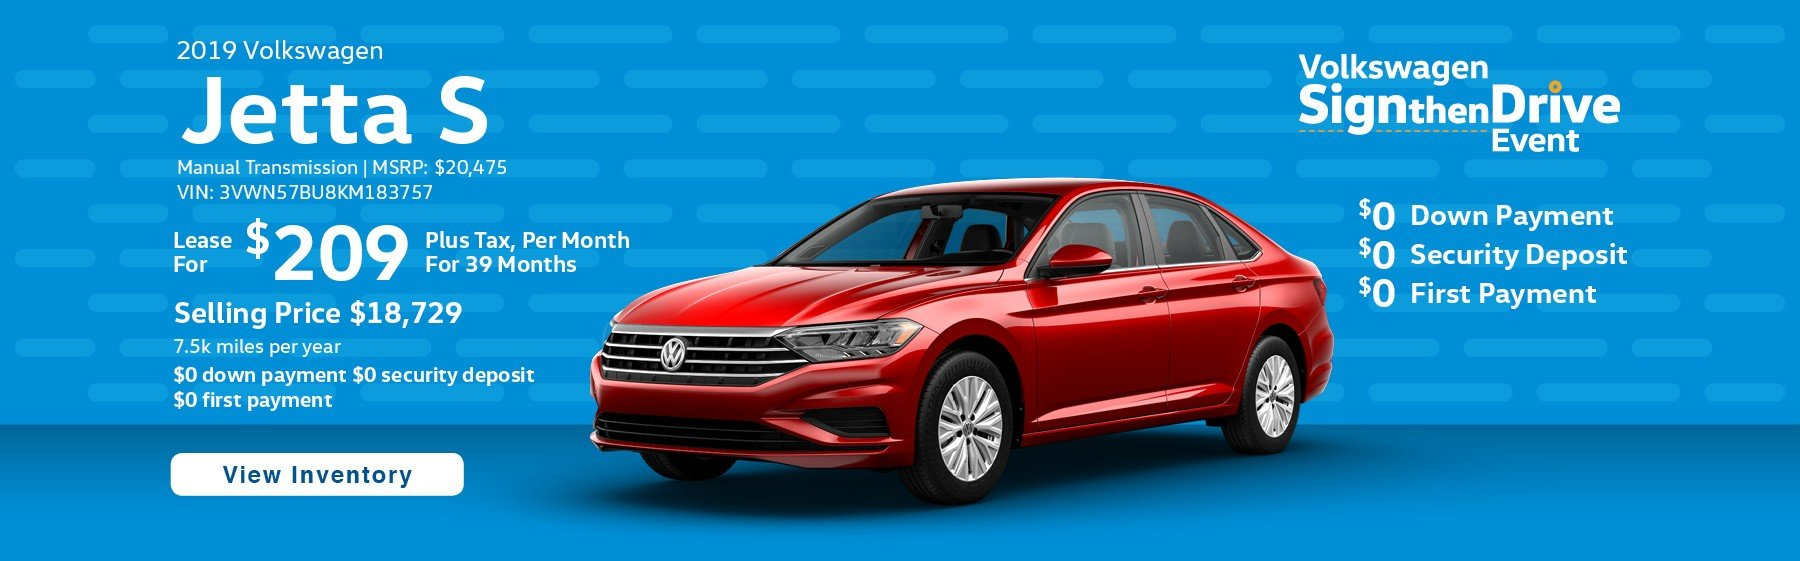 Lease the 2019 Jetta S Manual Transmission for $209 per month, plus tax for 39 months.